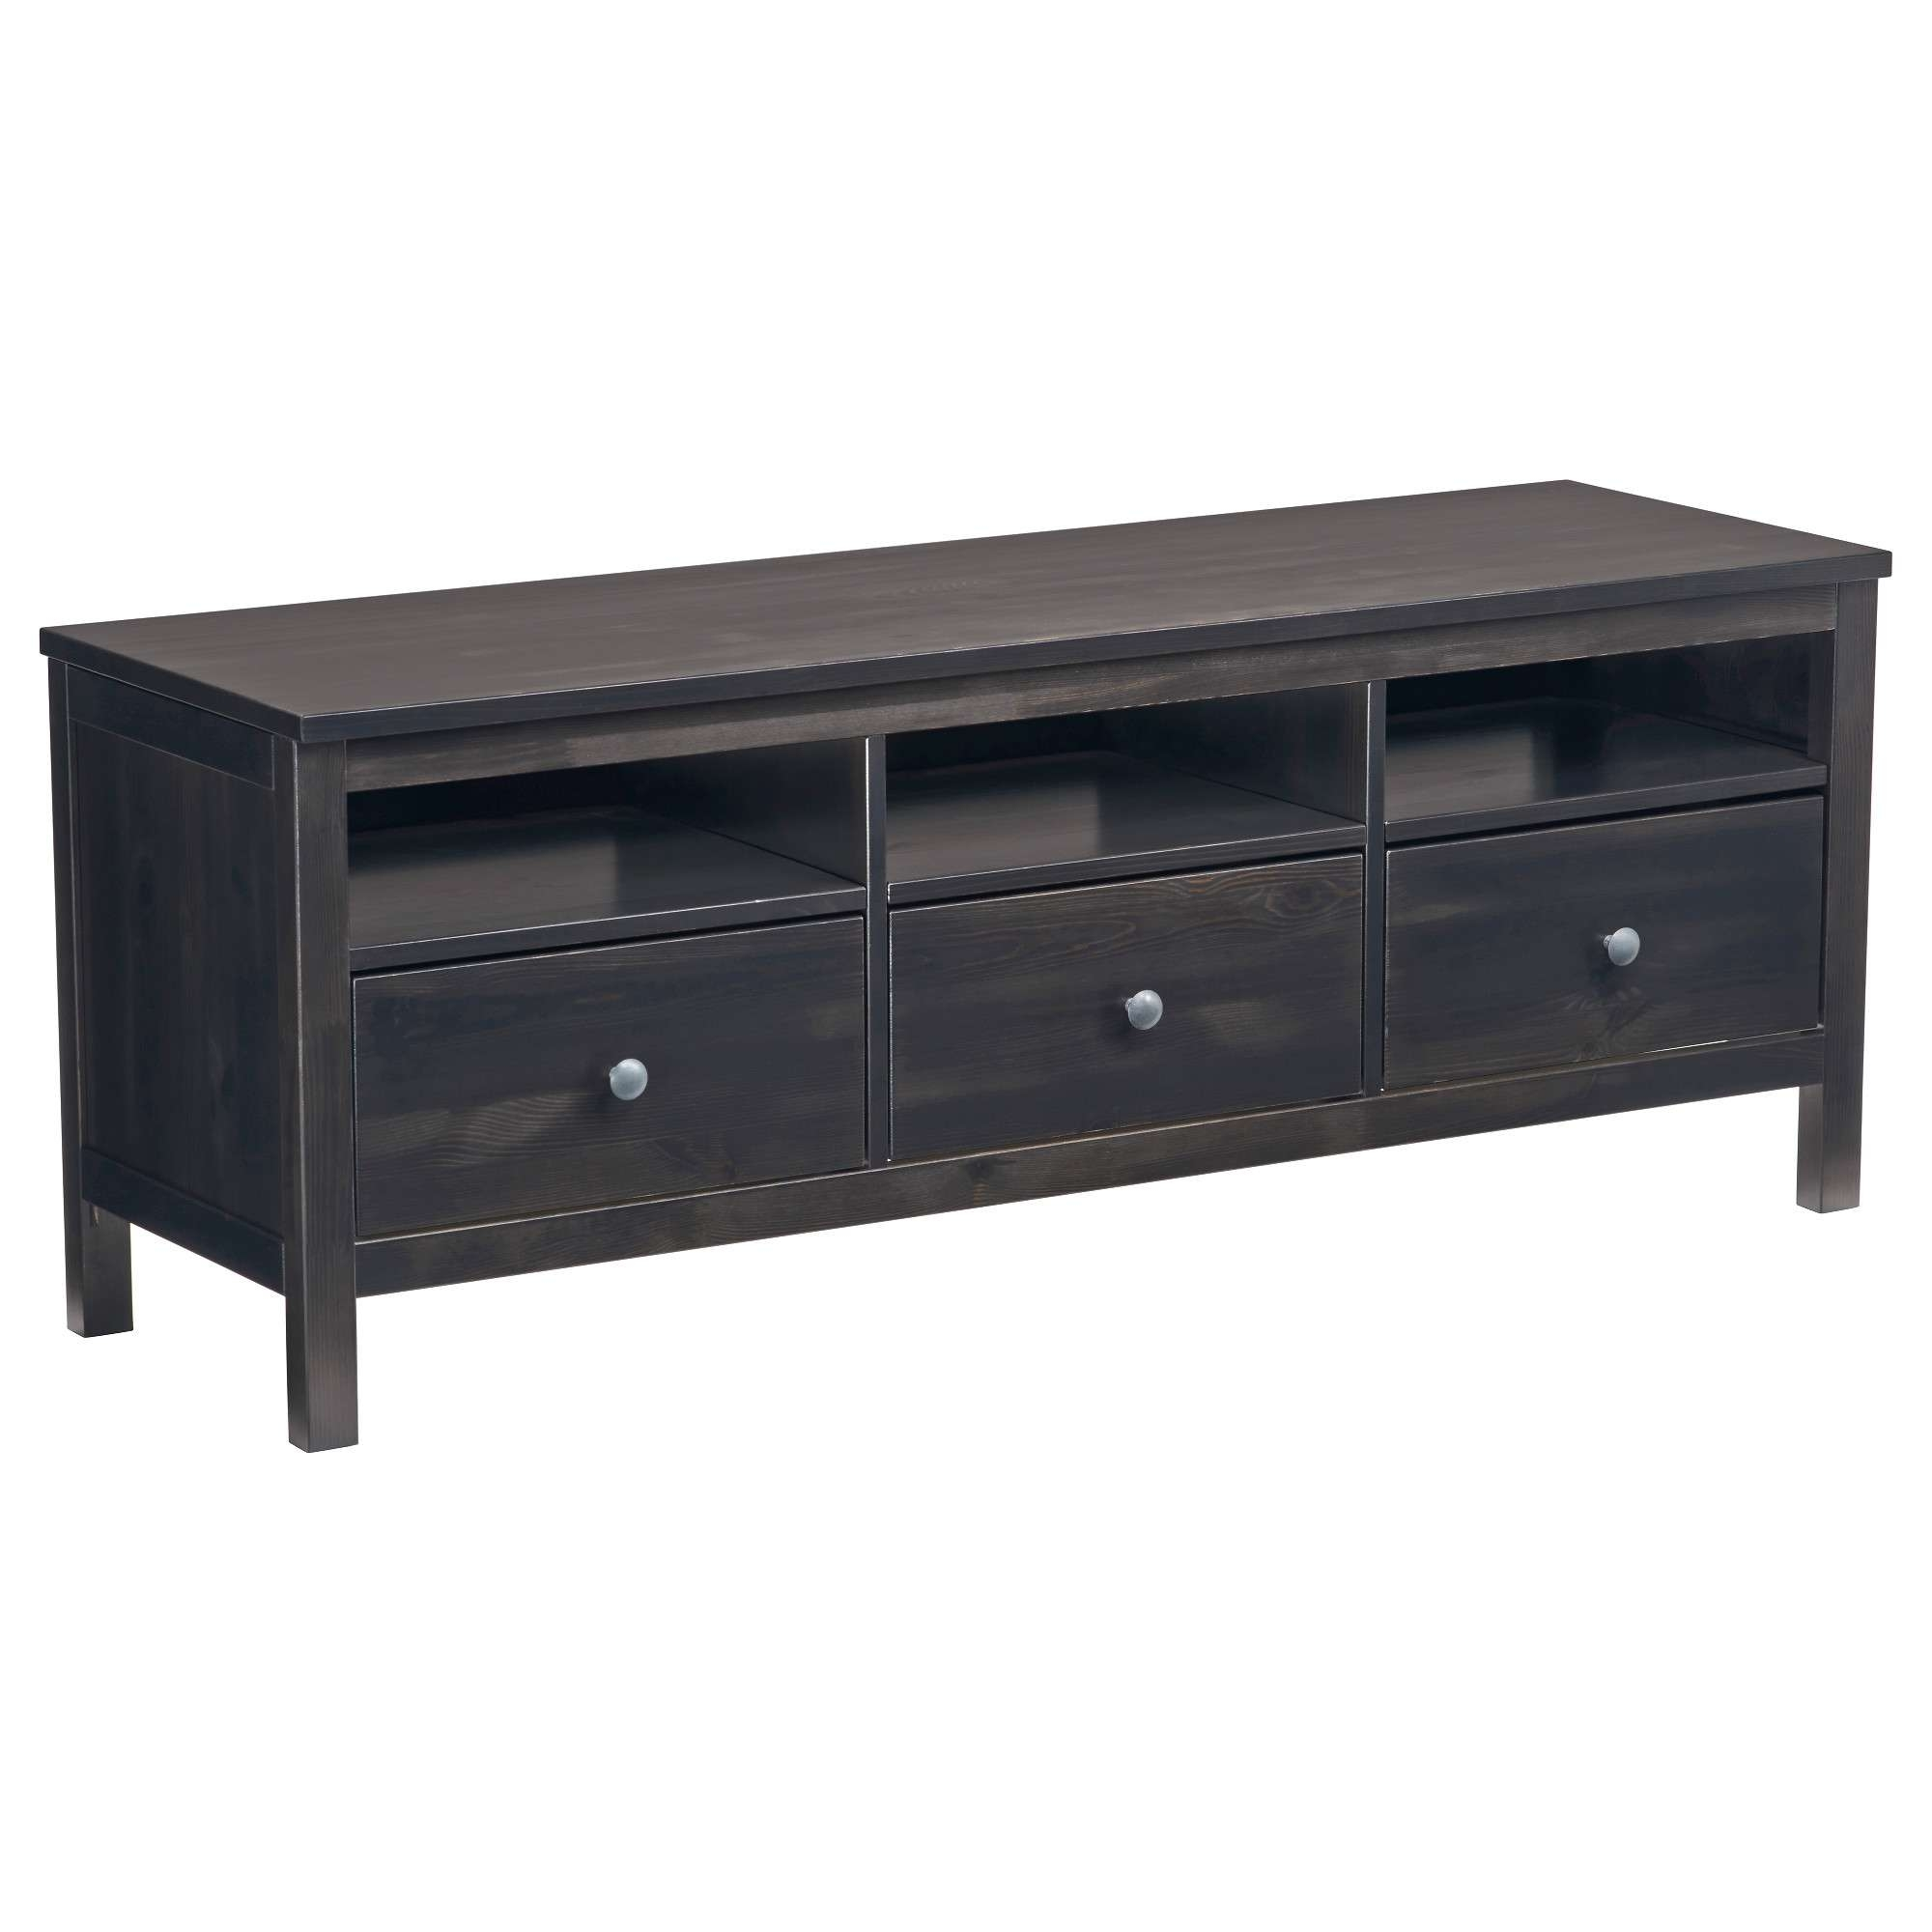 Tv Stands & Entertainment Centers – Ikea Pertaining To Black Tv Cabinets With Drawers (View 16 of 20)